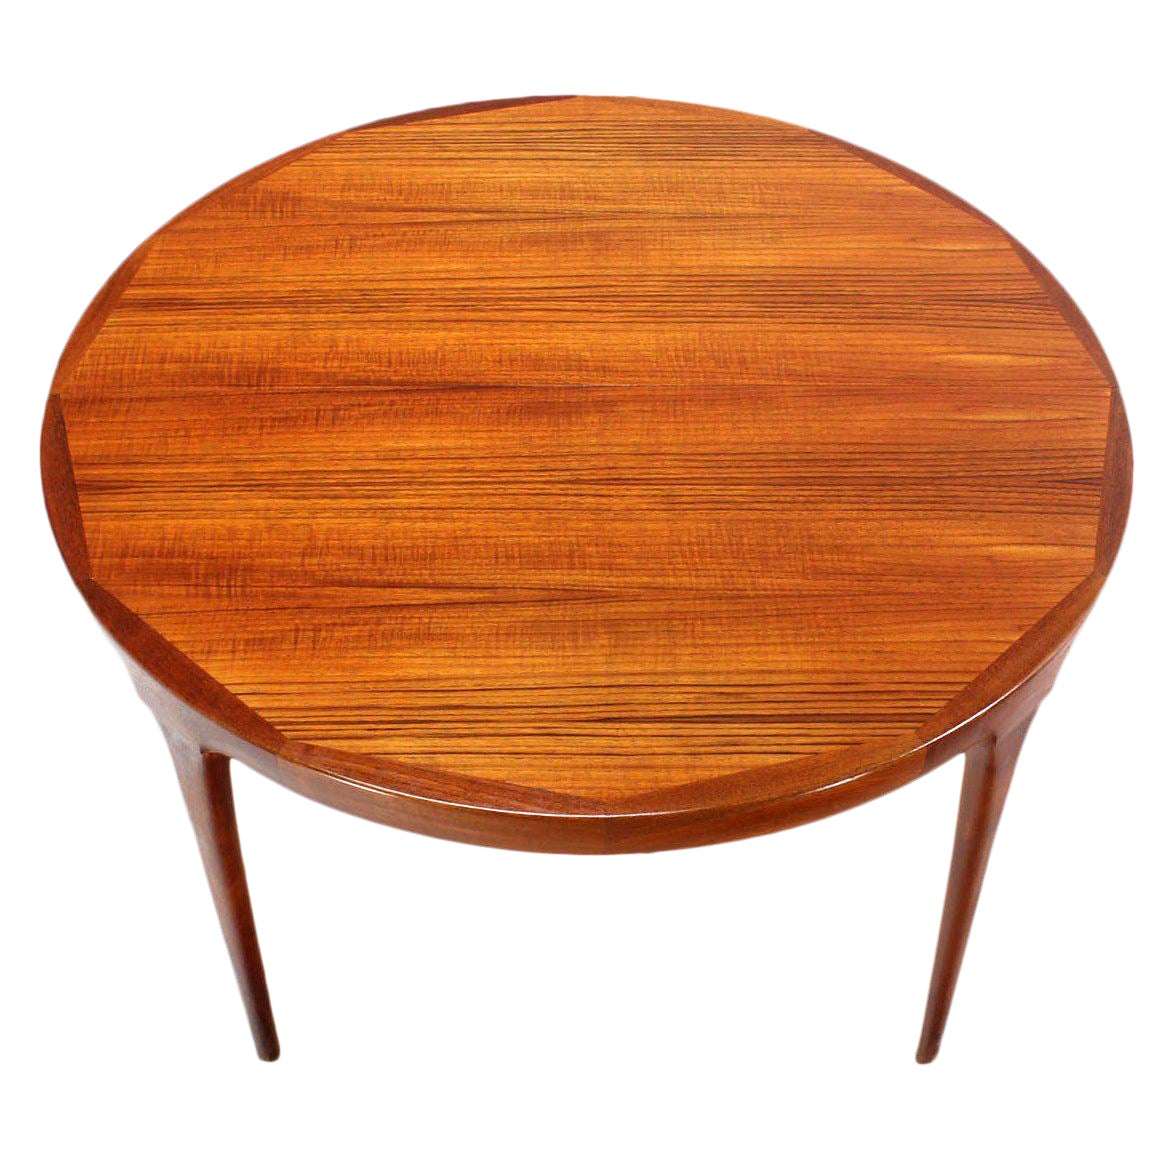 78863417bb9d danish-mid-century-modern-round-teak-dining-table-with-two-leaves -7894 aspect fit height 1600 width 1600